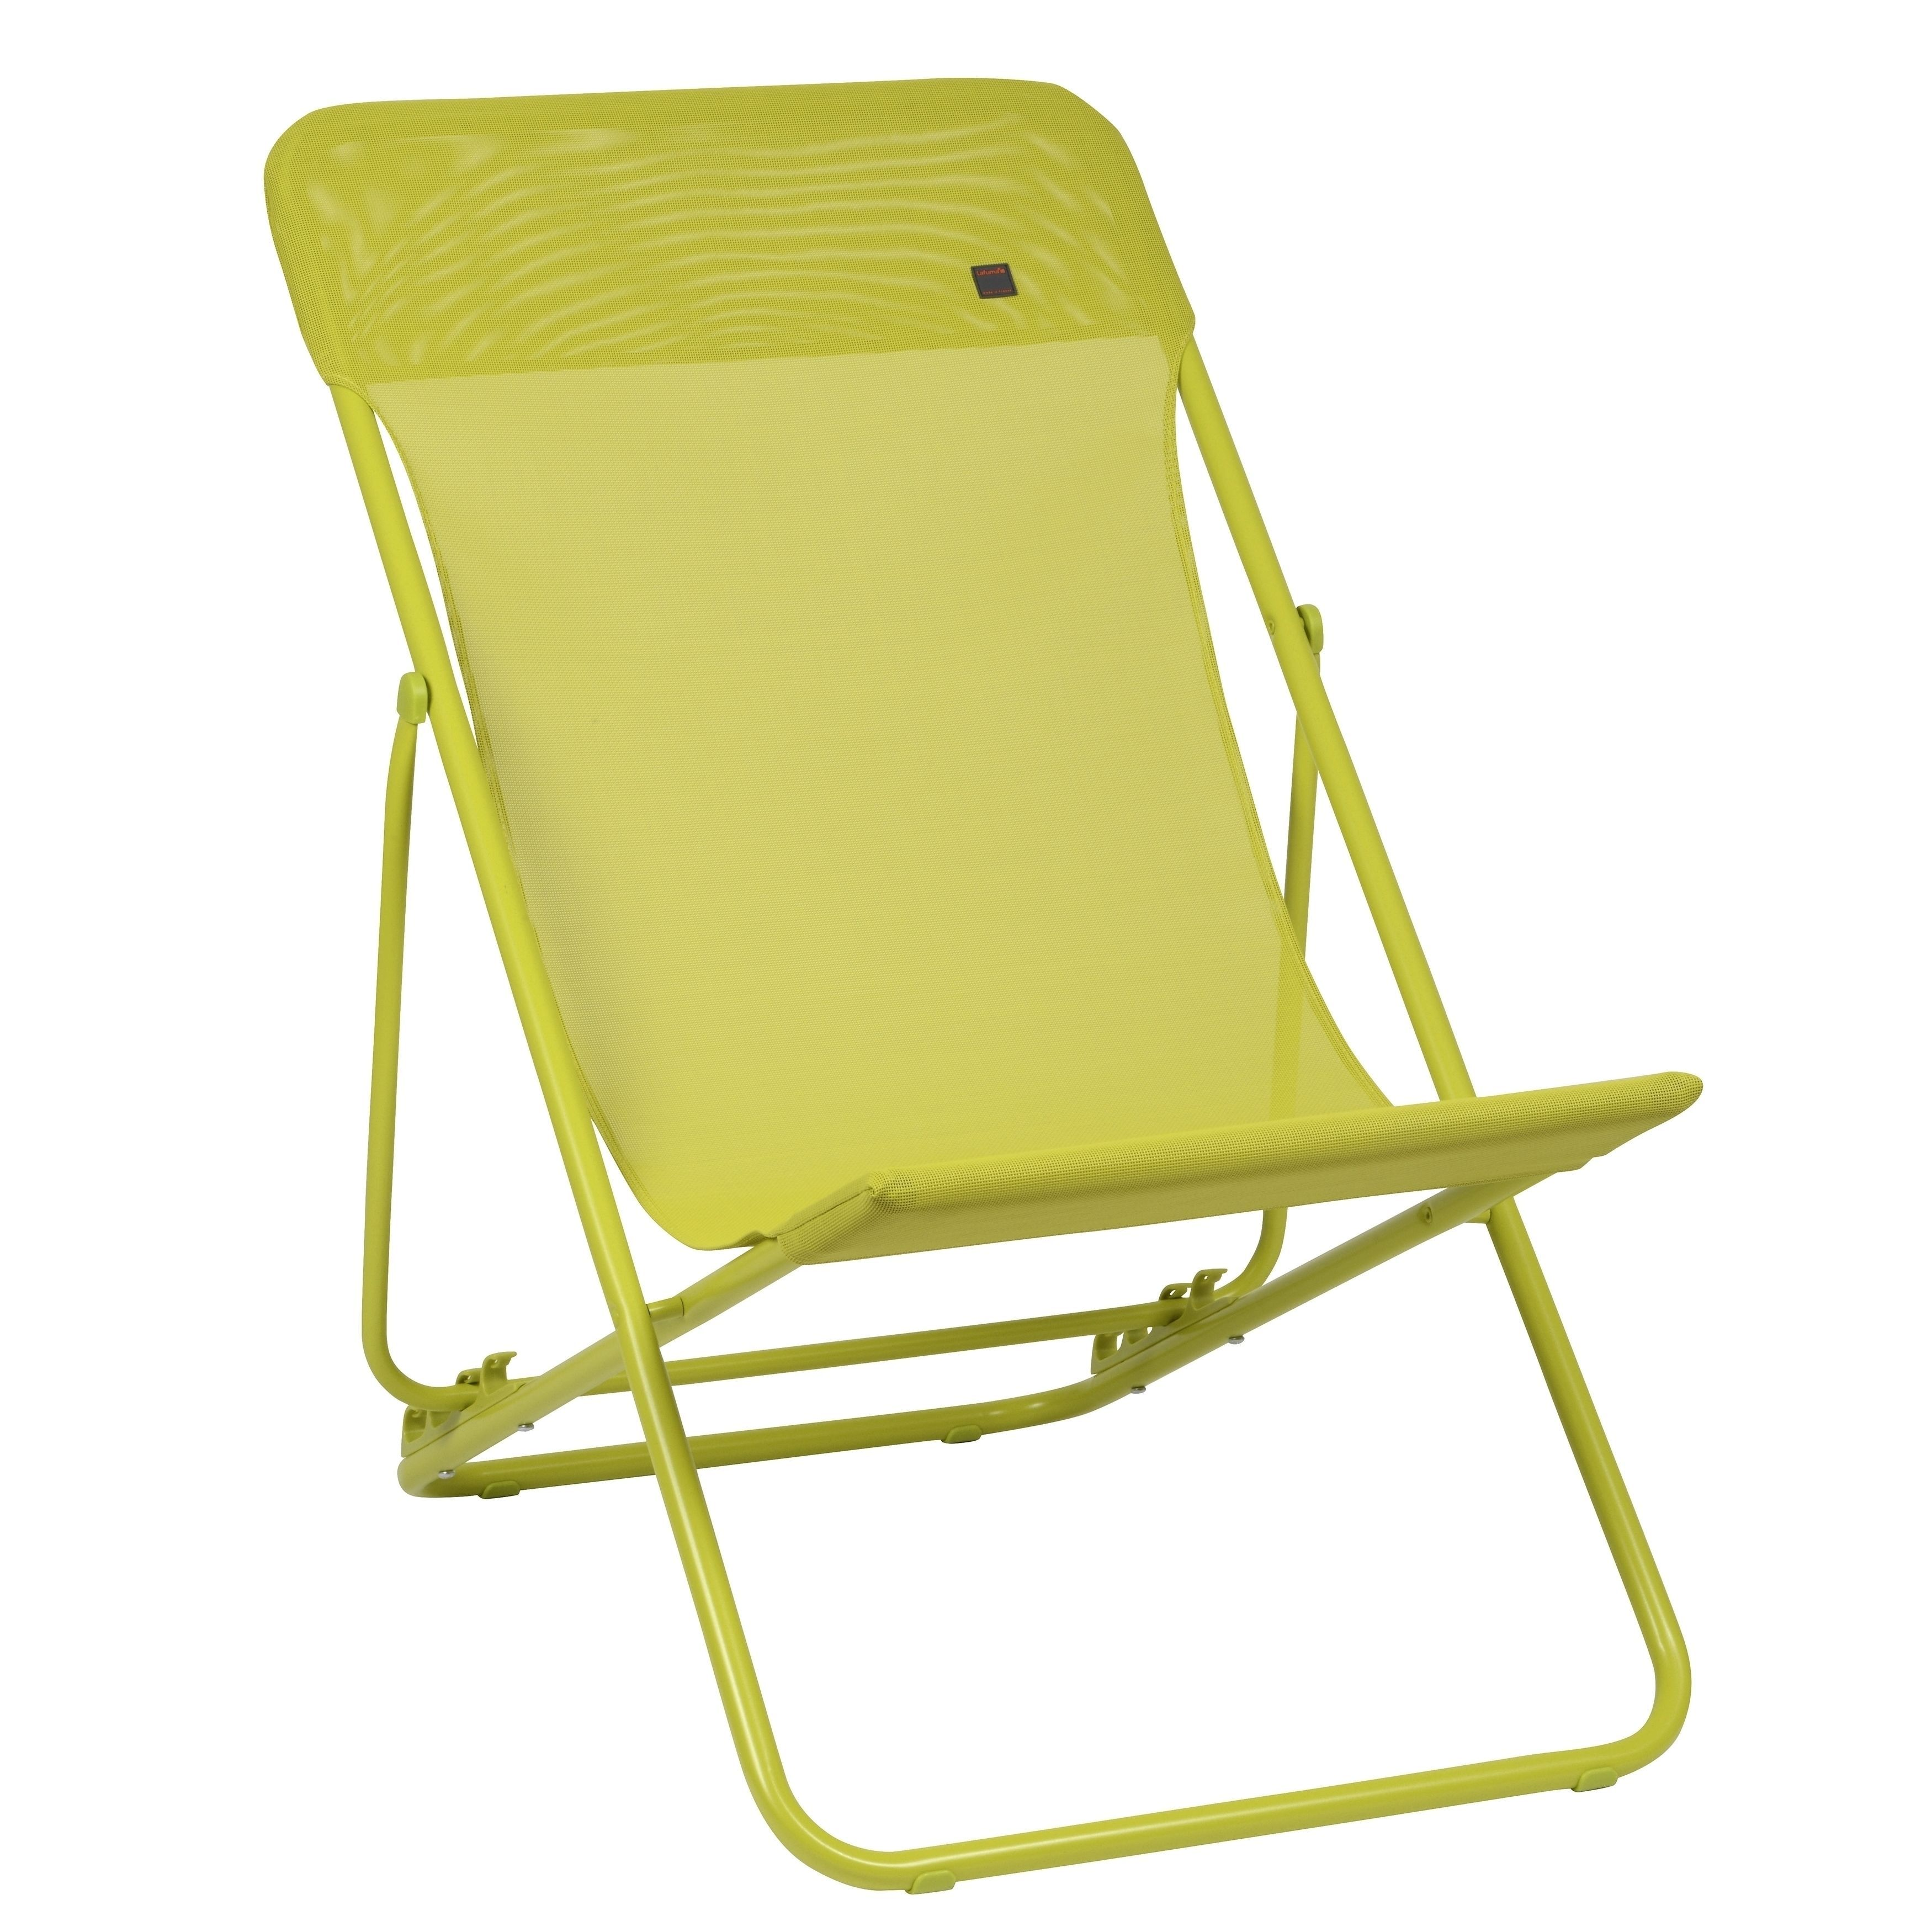 A modern deck chair that is constructed without a crossbar at the